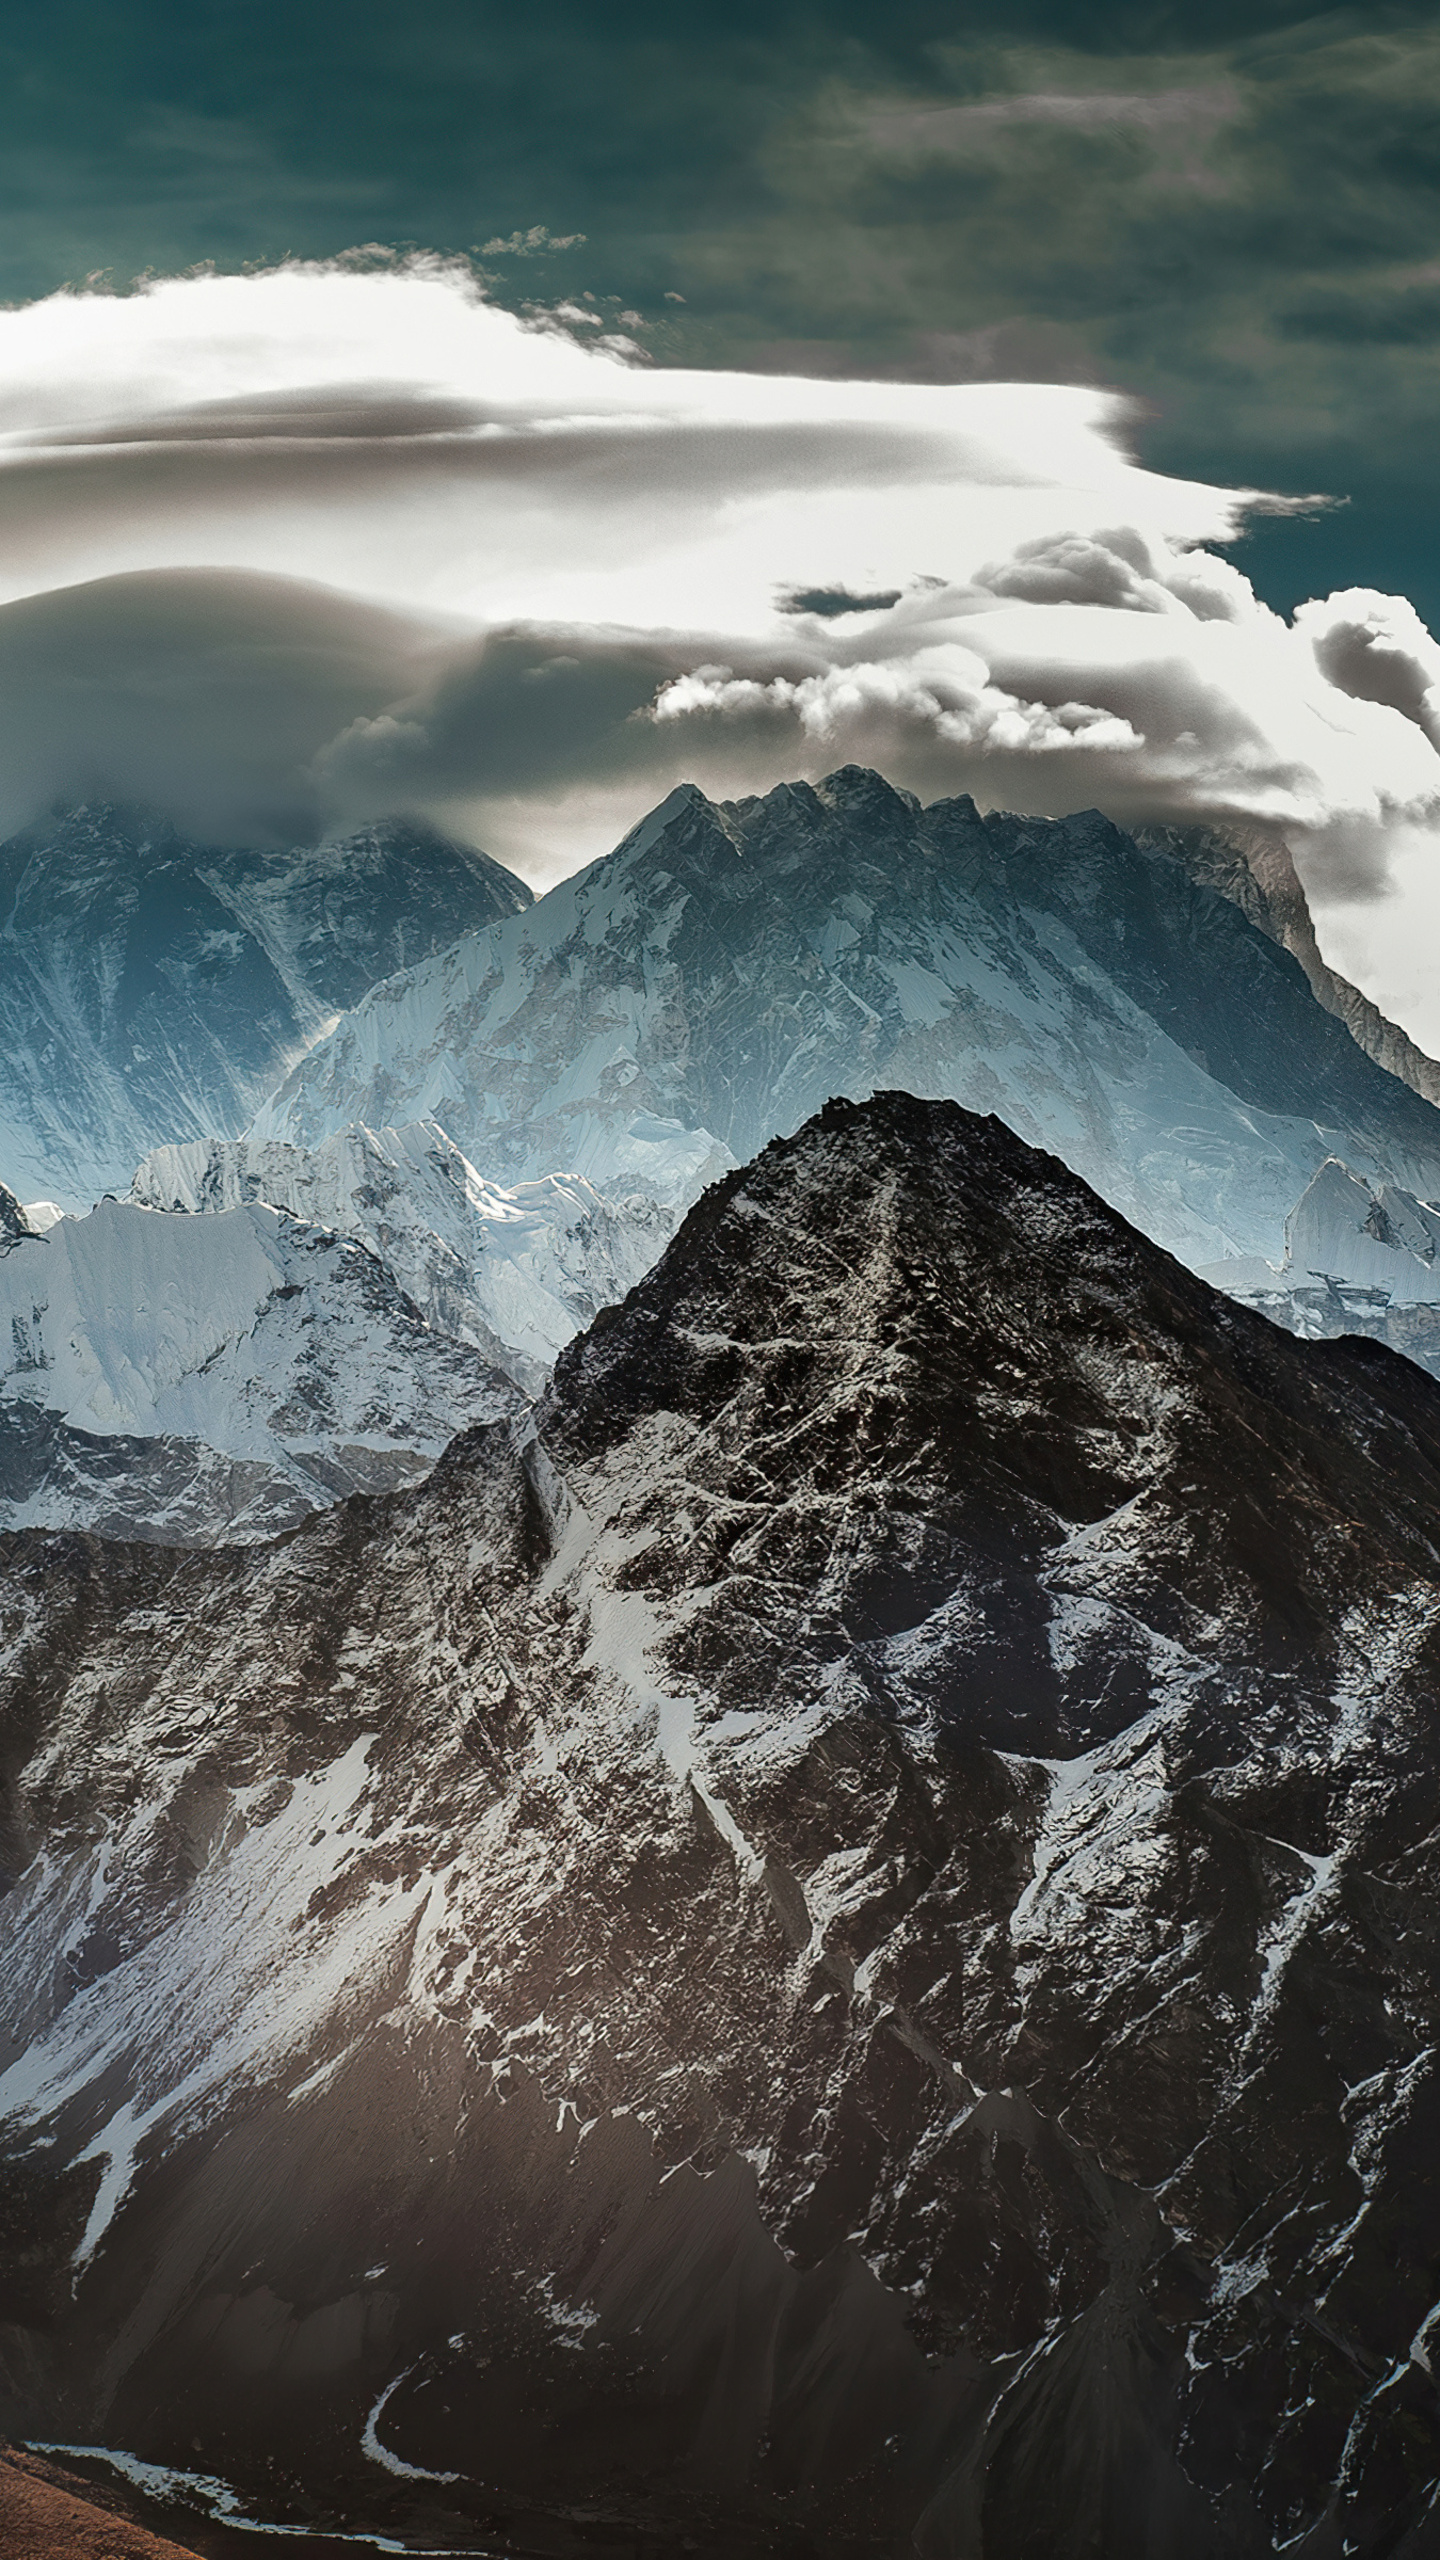 mountains-covered-in-snow-clouds-4k-k8.jpg